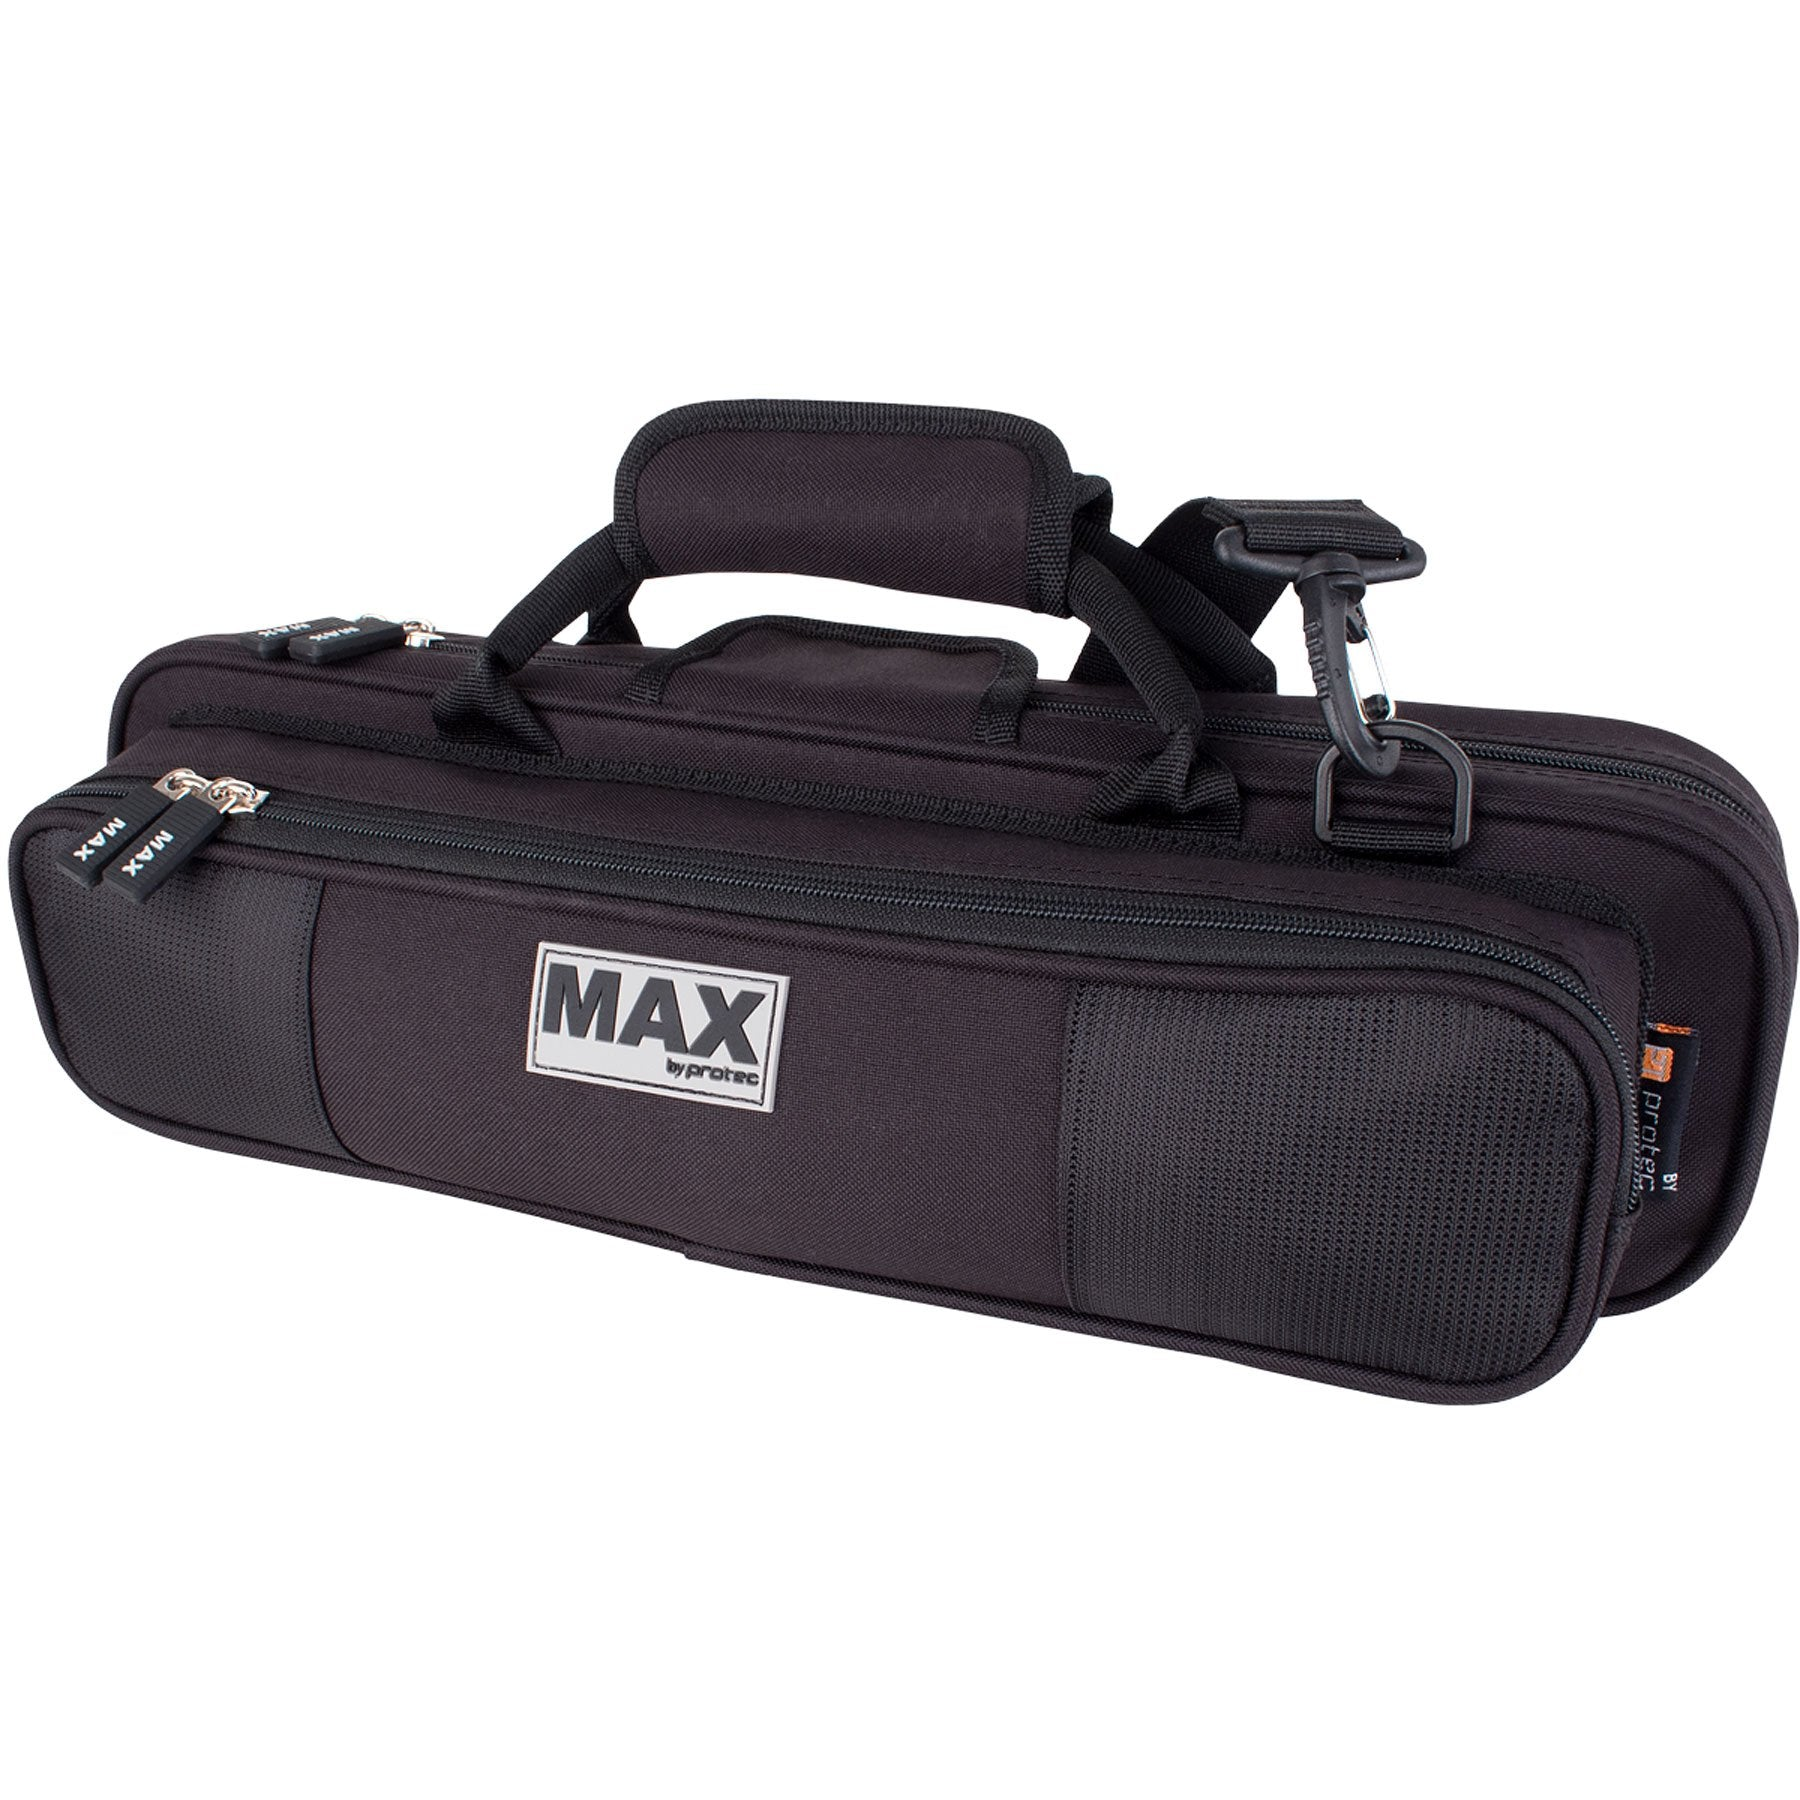 Protec - Flute MAX Case-Accessories-Protec-Black-Music Elements